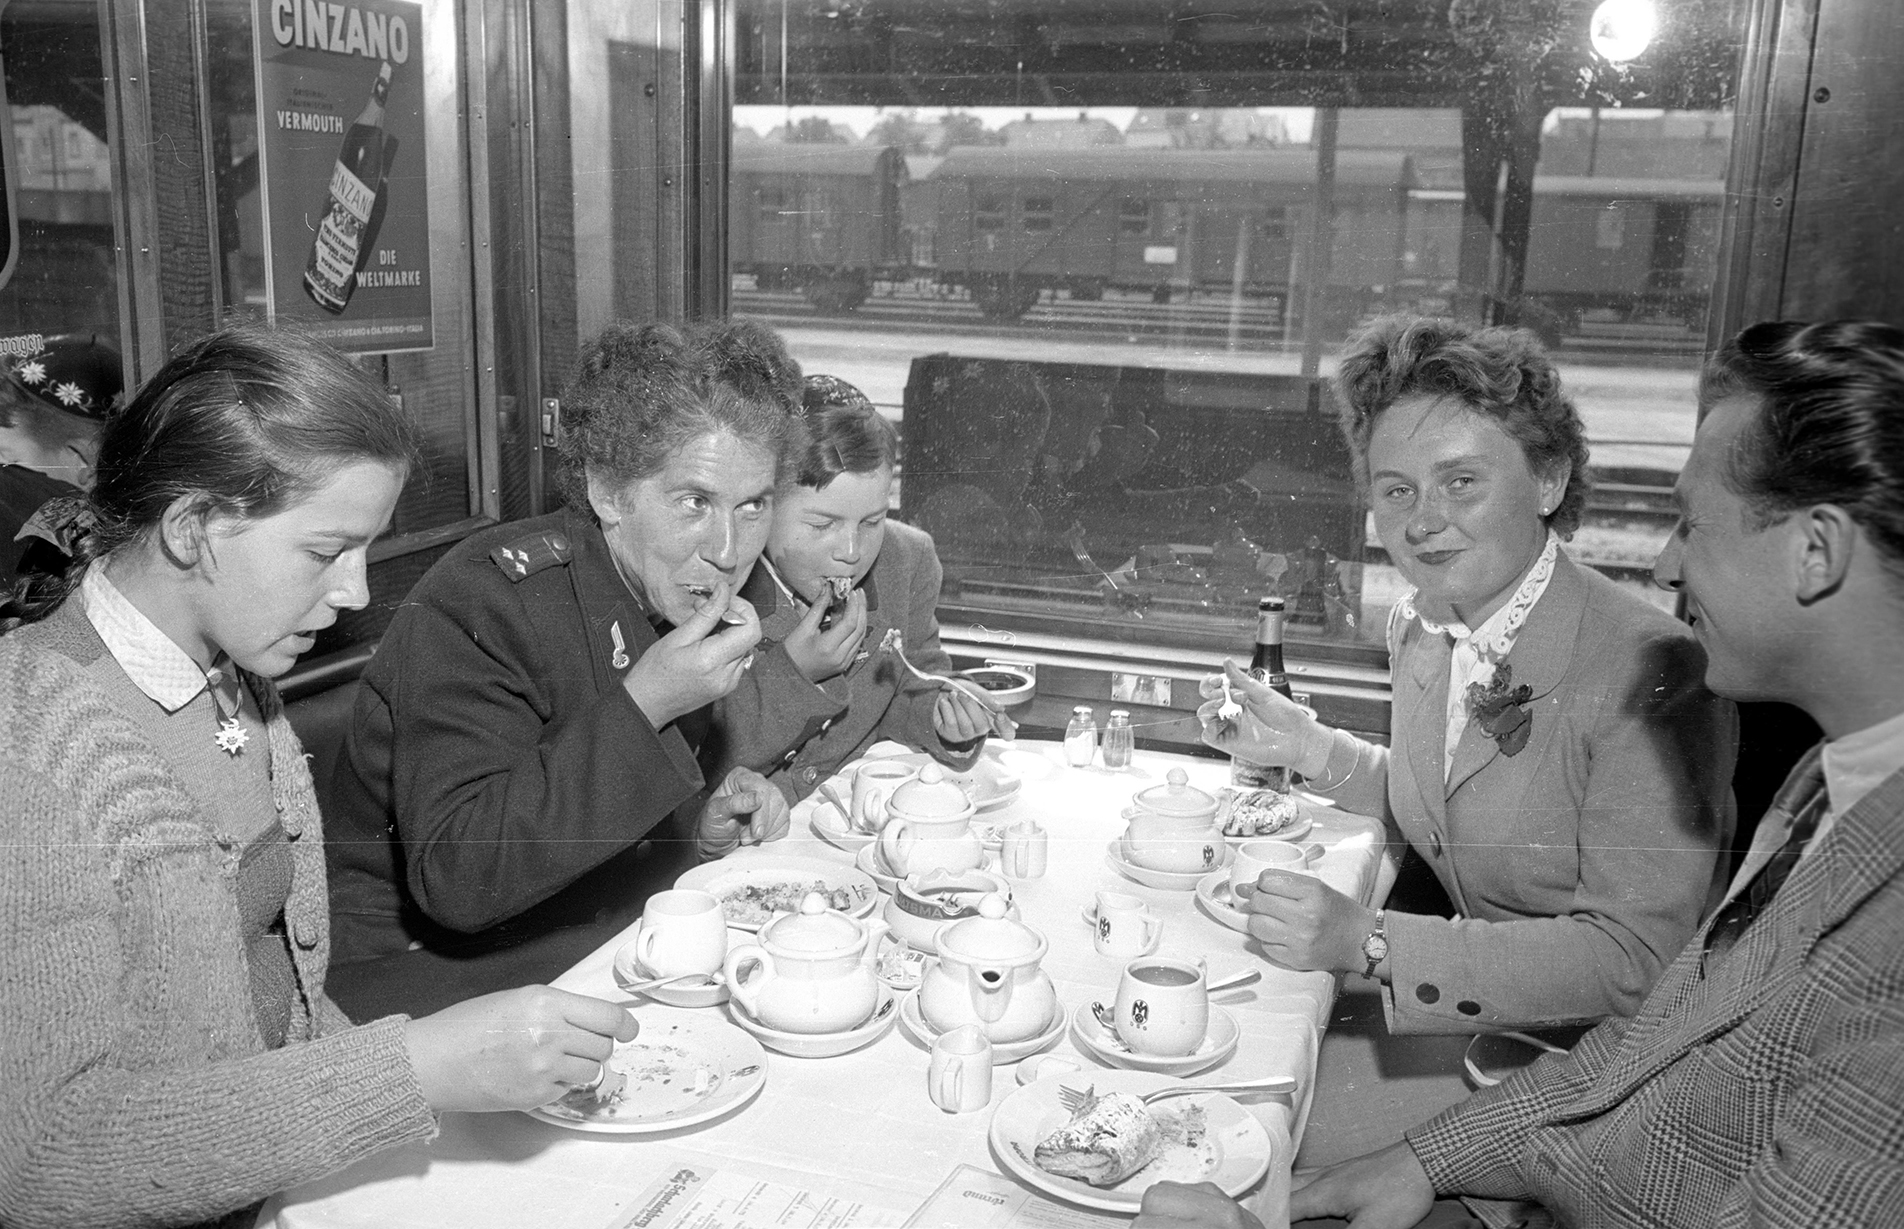 a group of friends eat dinner in a train car